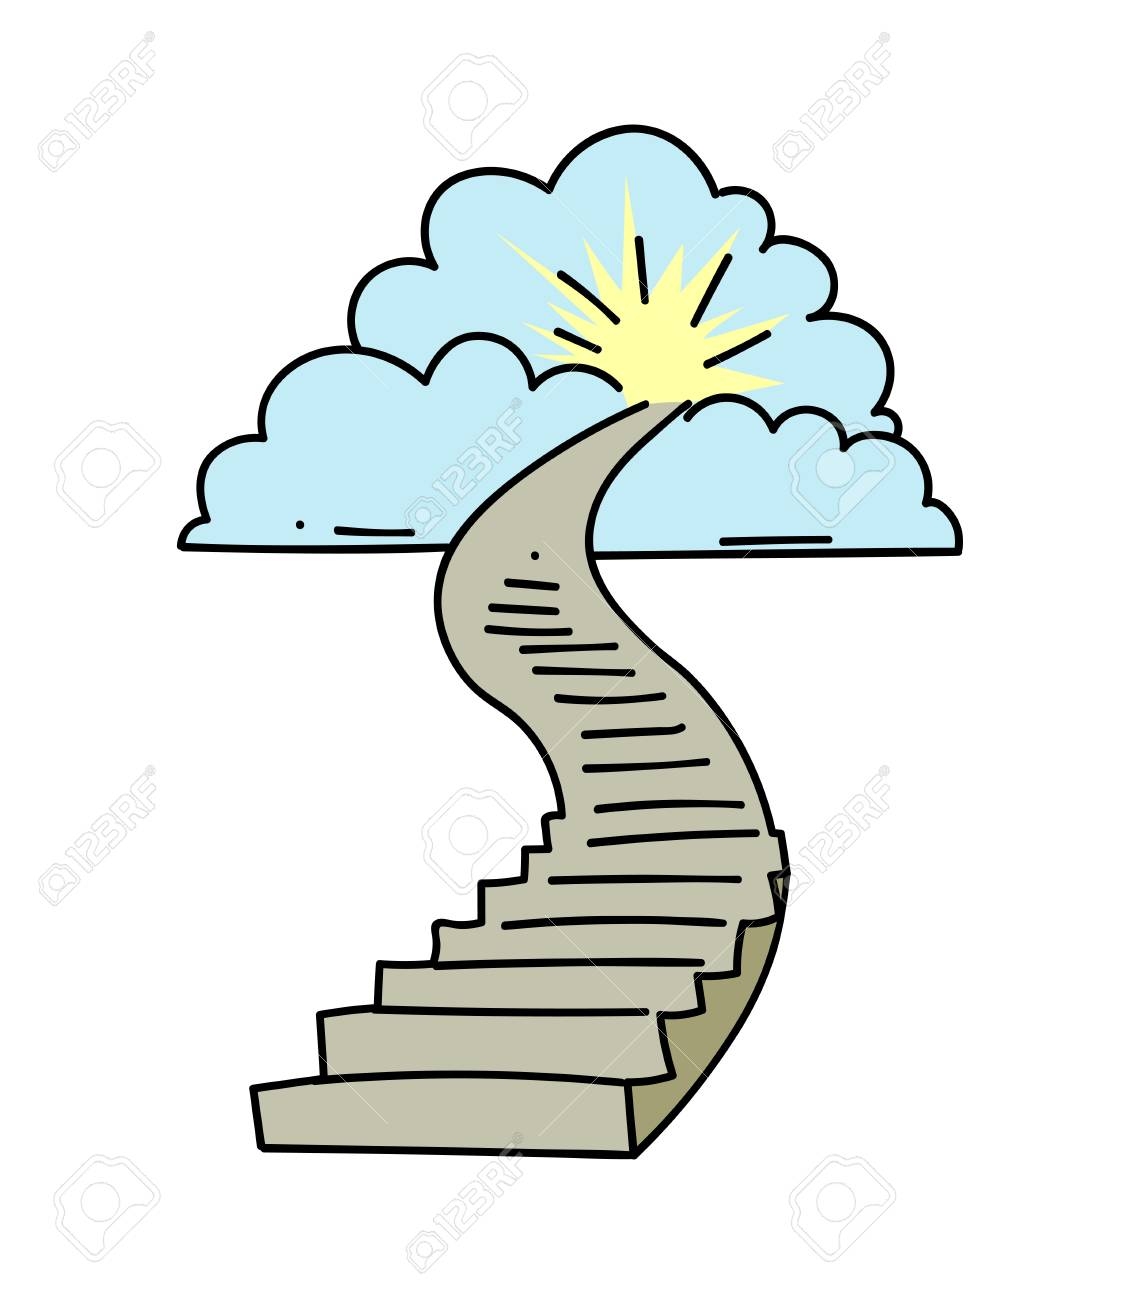 hand drawn cartoon image of stairway to heaven royalty free rh 123rf com